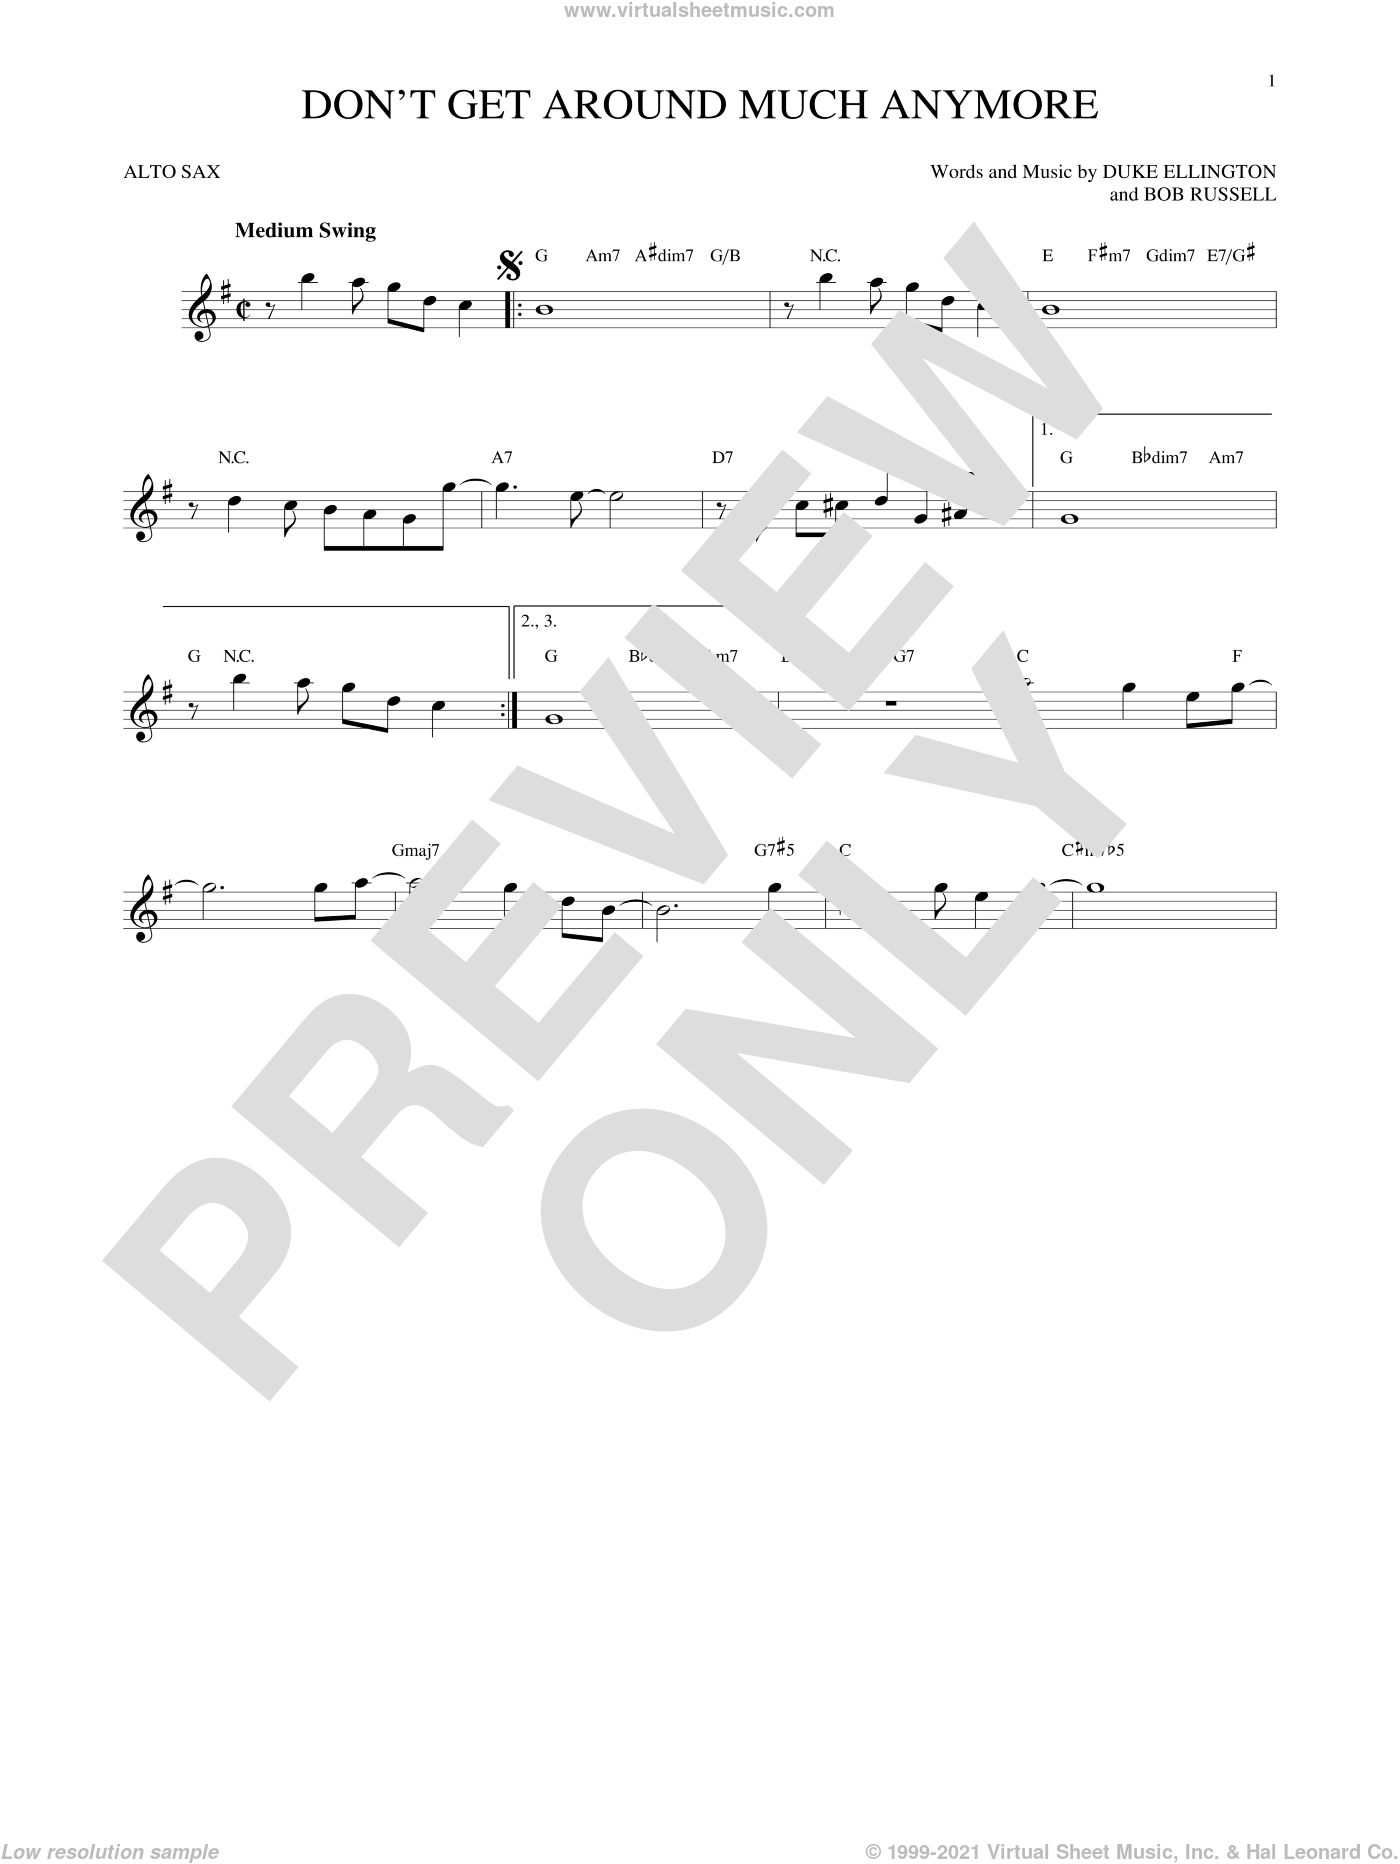 Don't Get Around Much Anymore sheet music for alto saxophone solo by Duke Ellington and Bob Russell, intermediate skill level